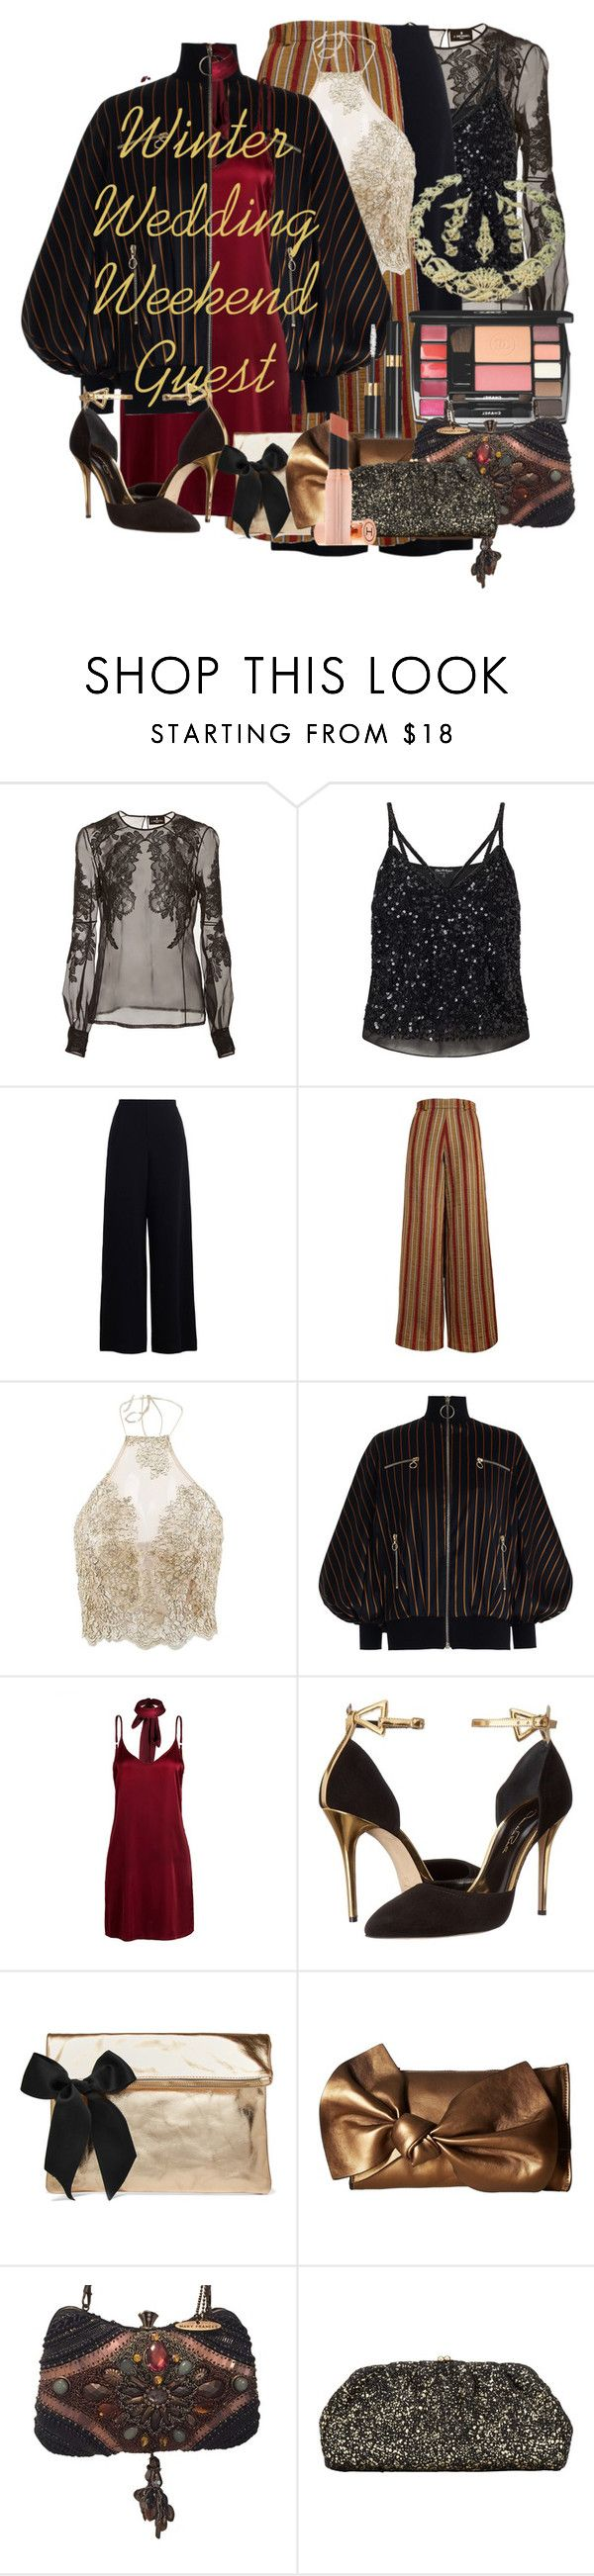 """Weekend Wedding Celebration"" by daincyng ❤ liked on Polyvore featuring J. Mendel, Miss Selfridge, Zimmermann, The Bee's Sneeze, WithChic, Oscar de la Renta, Clare V., French Connection, Mary Frances Accessories and John Lewis"